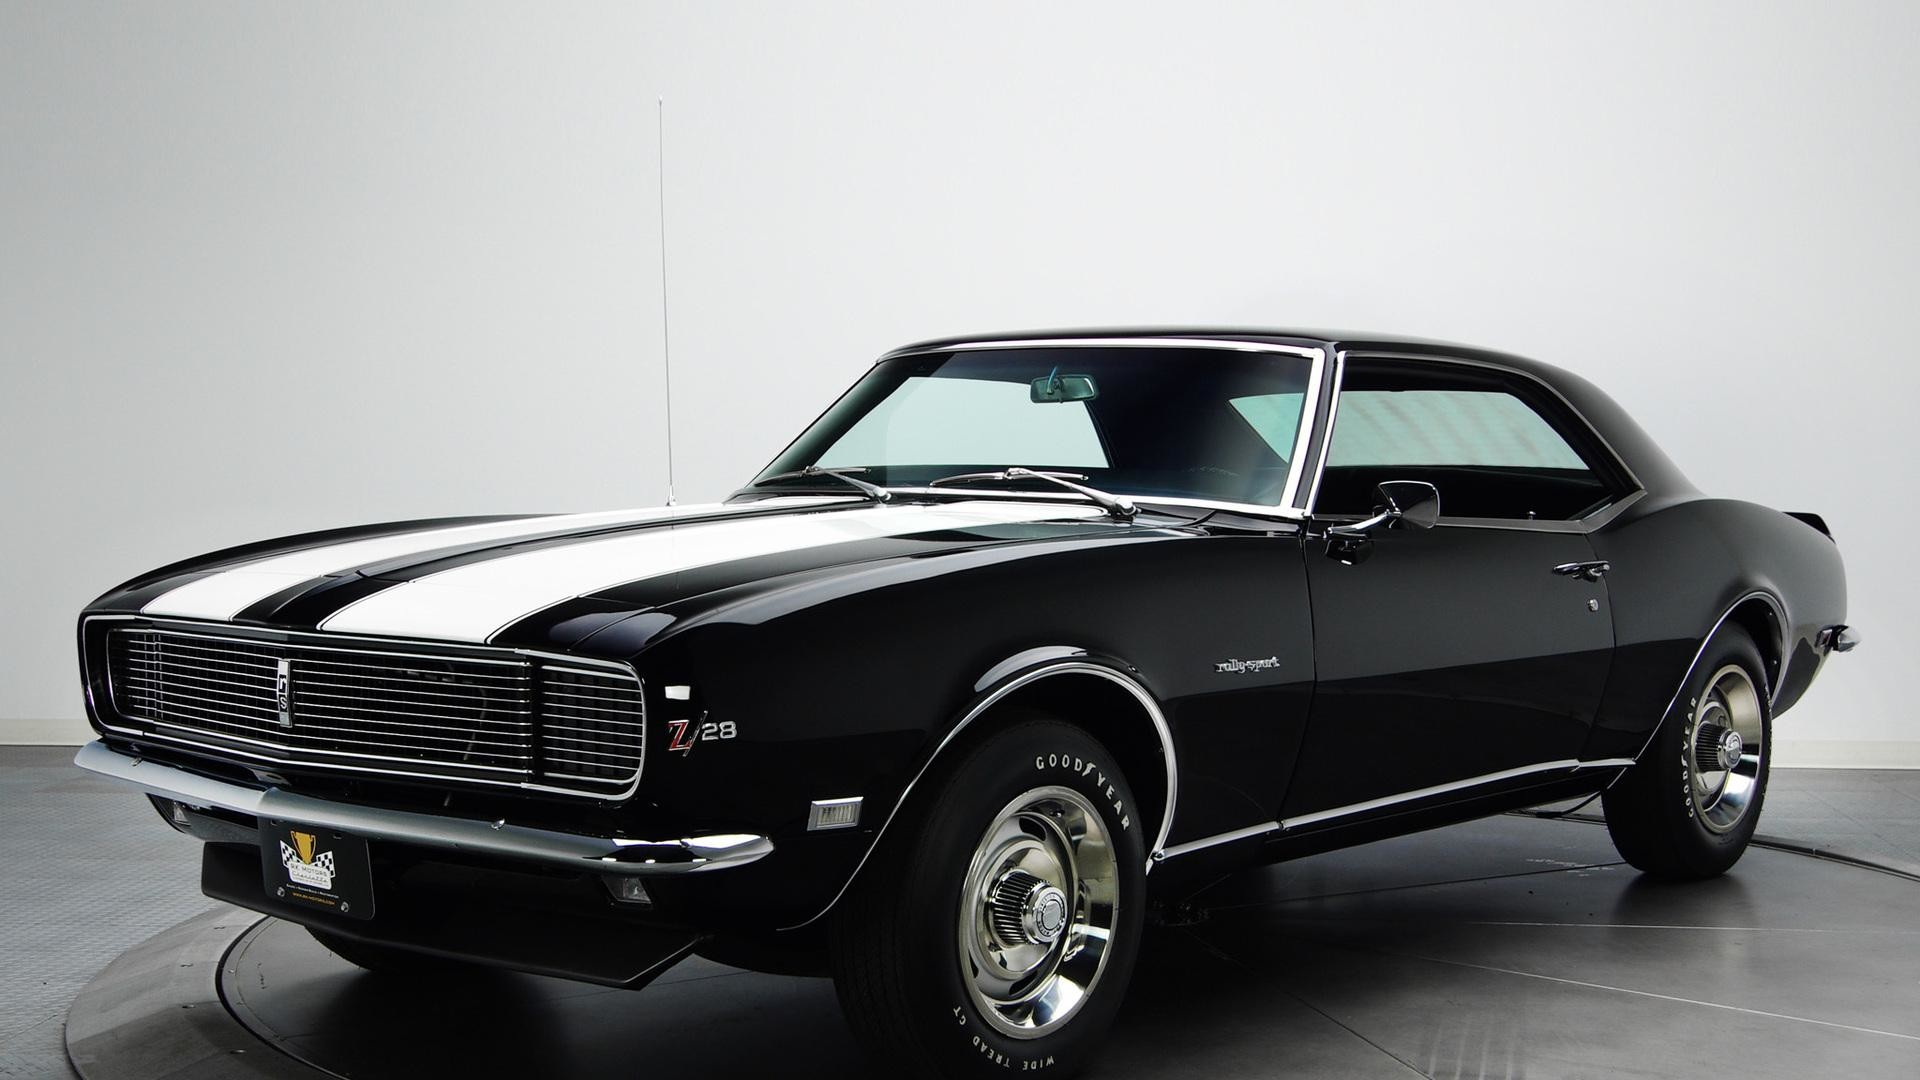 Amazing 1969 Chevrolet Camaro Z28 Hd Car Picture Images Â« Pin HD Wallpapers